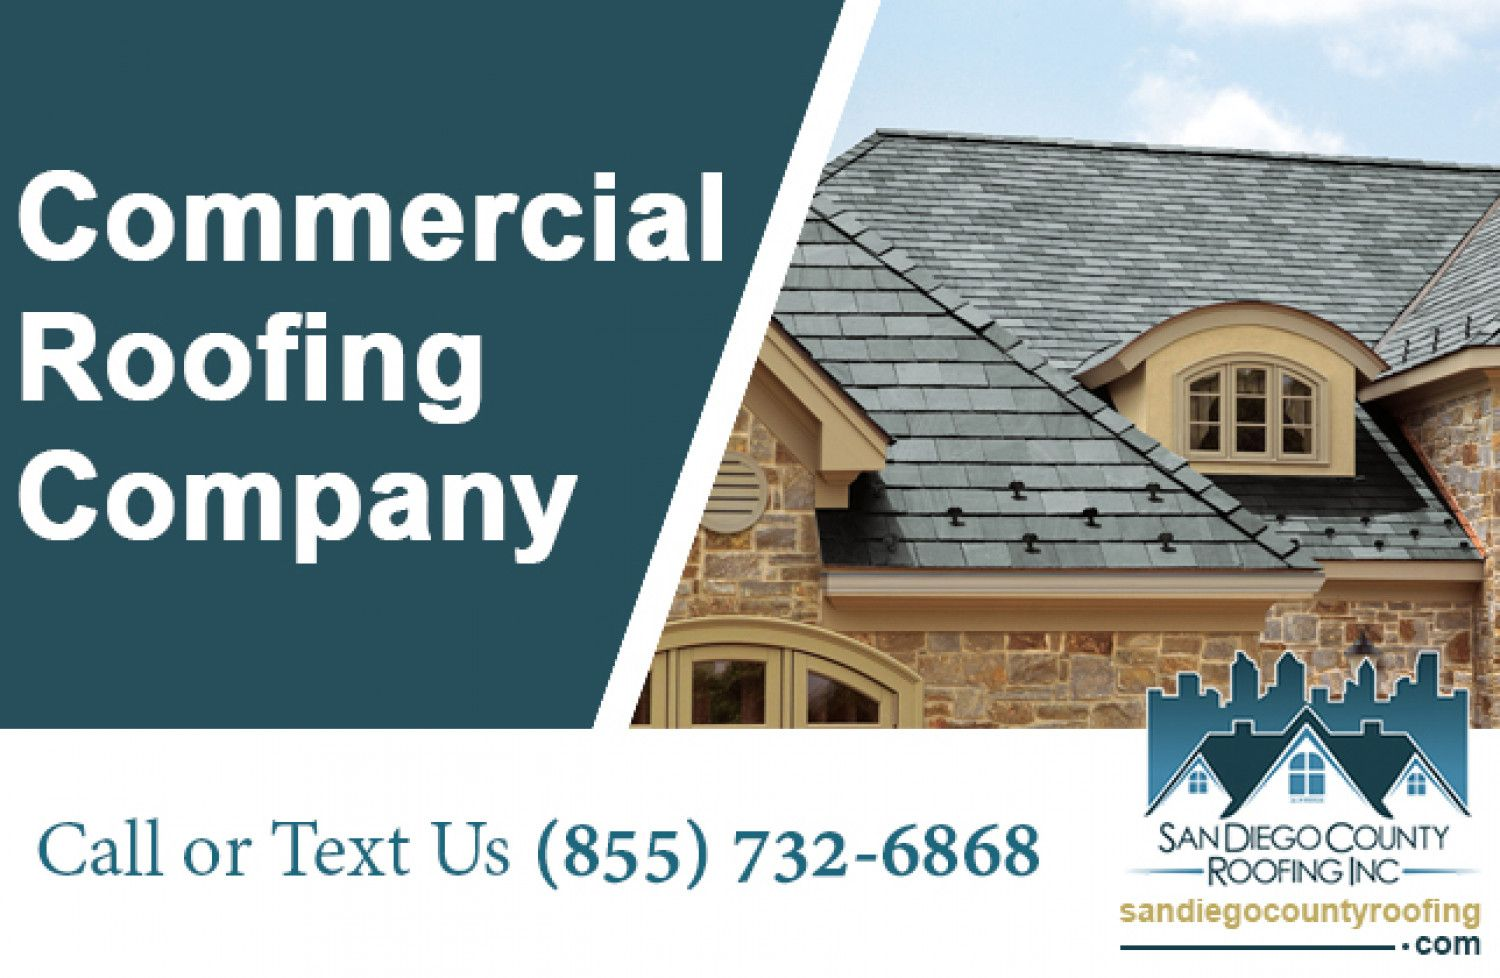 San Diego County Roofing is a fully insured family owned